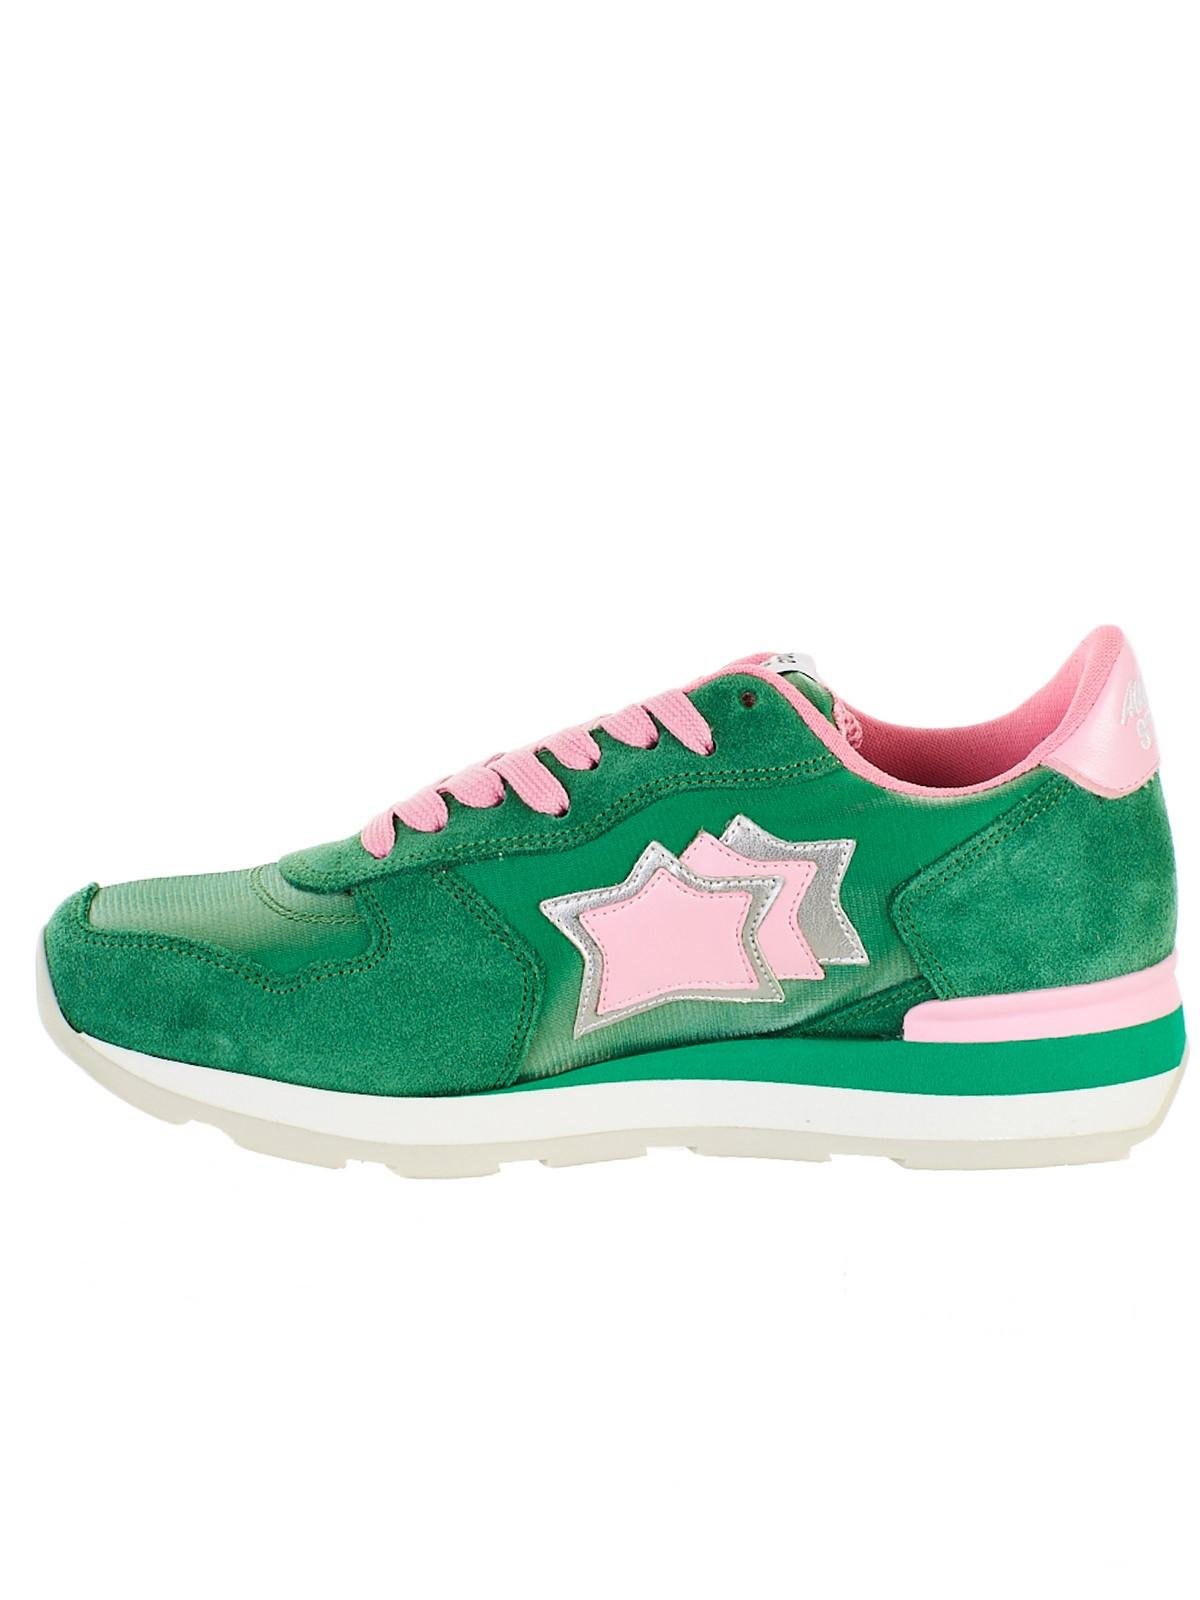 d9231a4789a281 Lyst - Atlantic Stars Star Patch Sneakers in Green - Save 20%